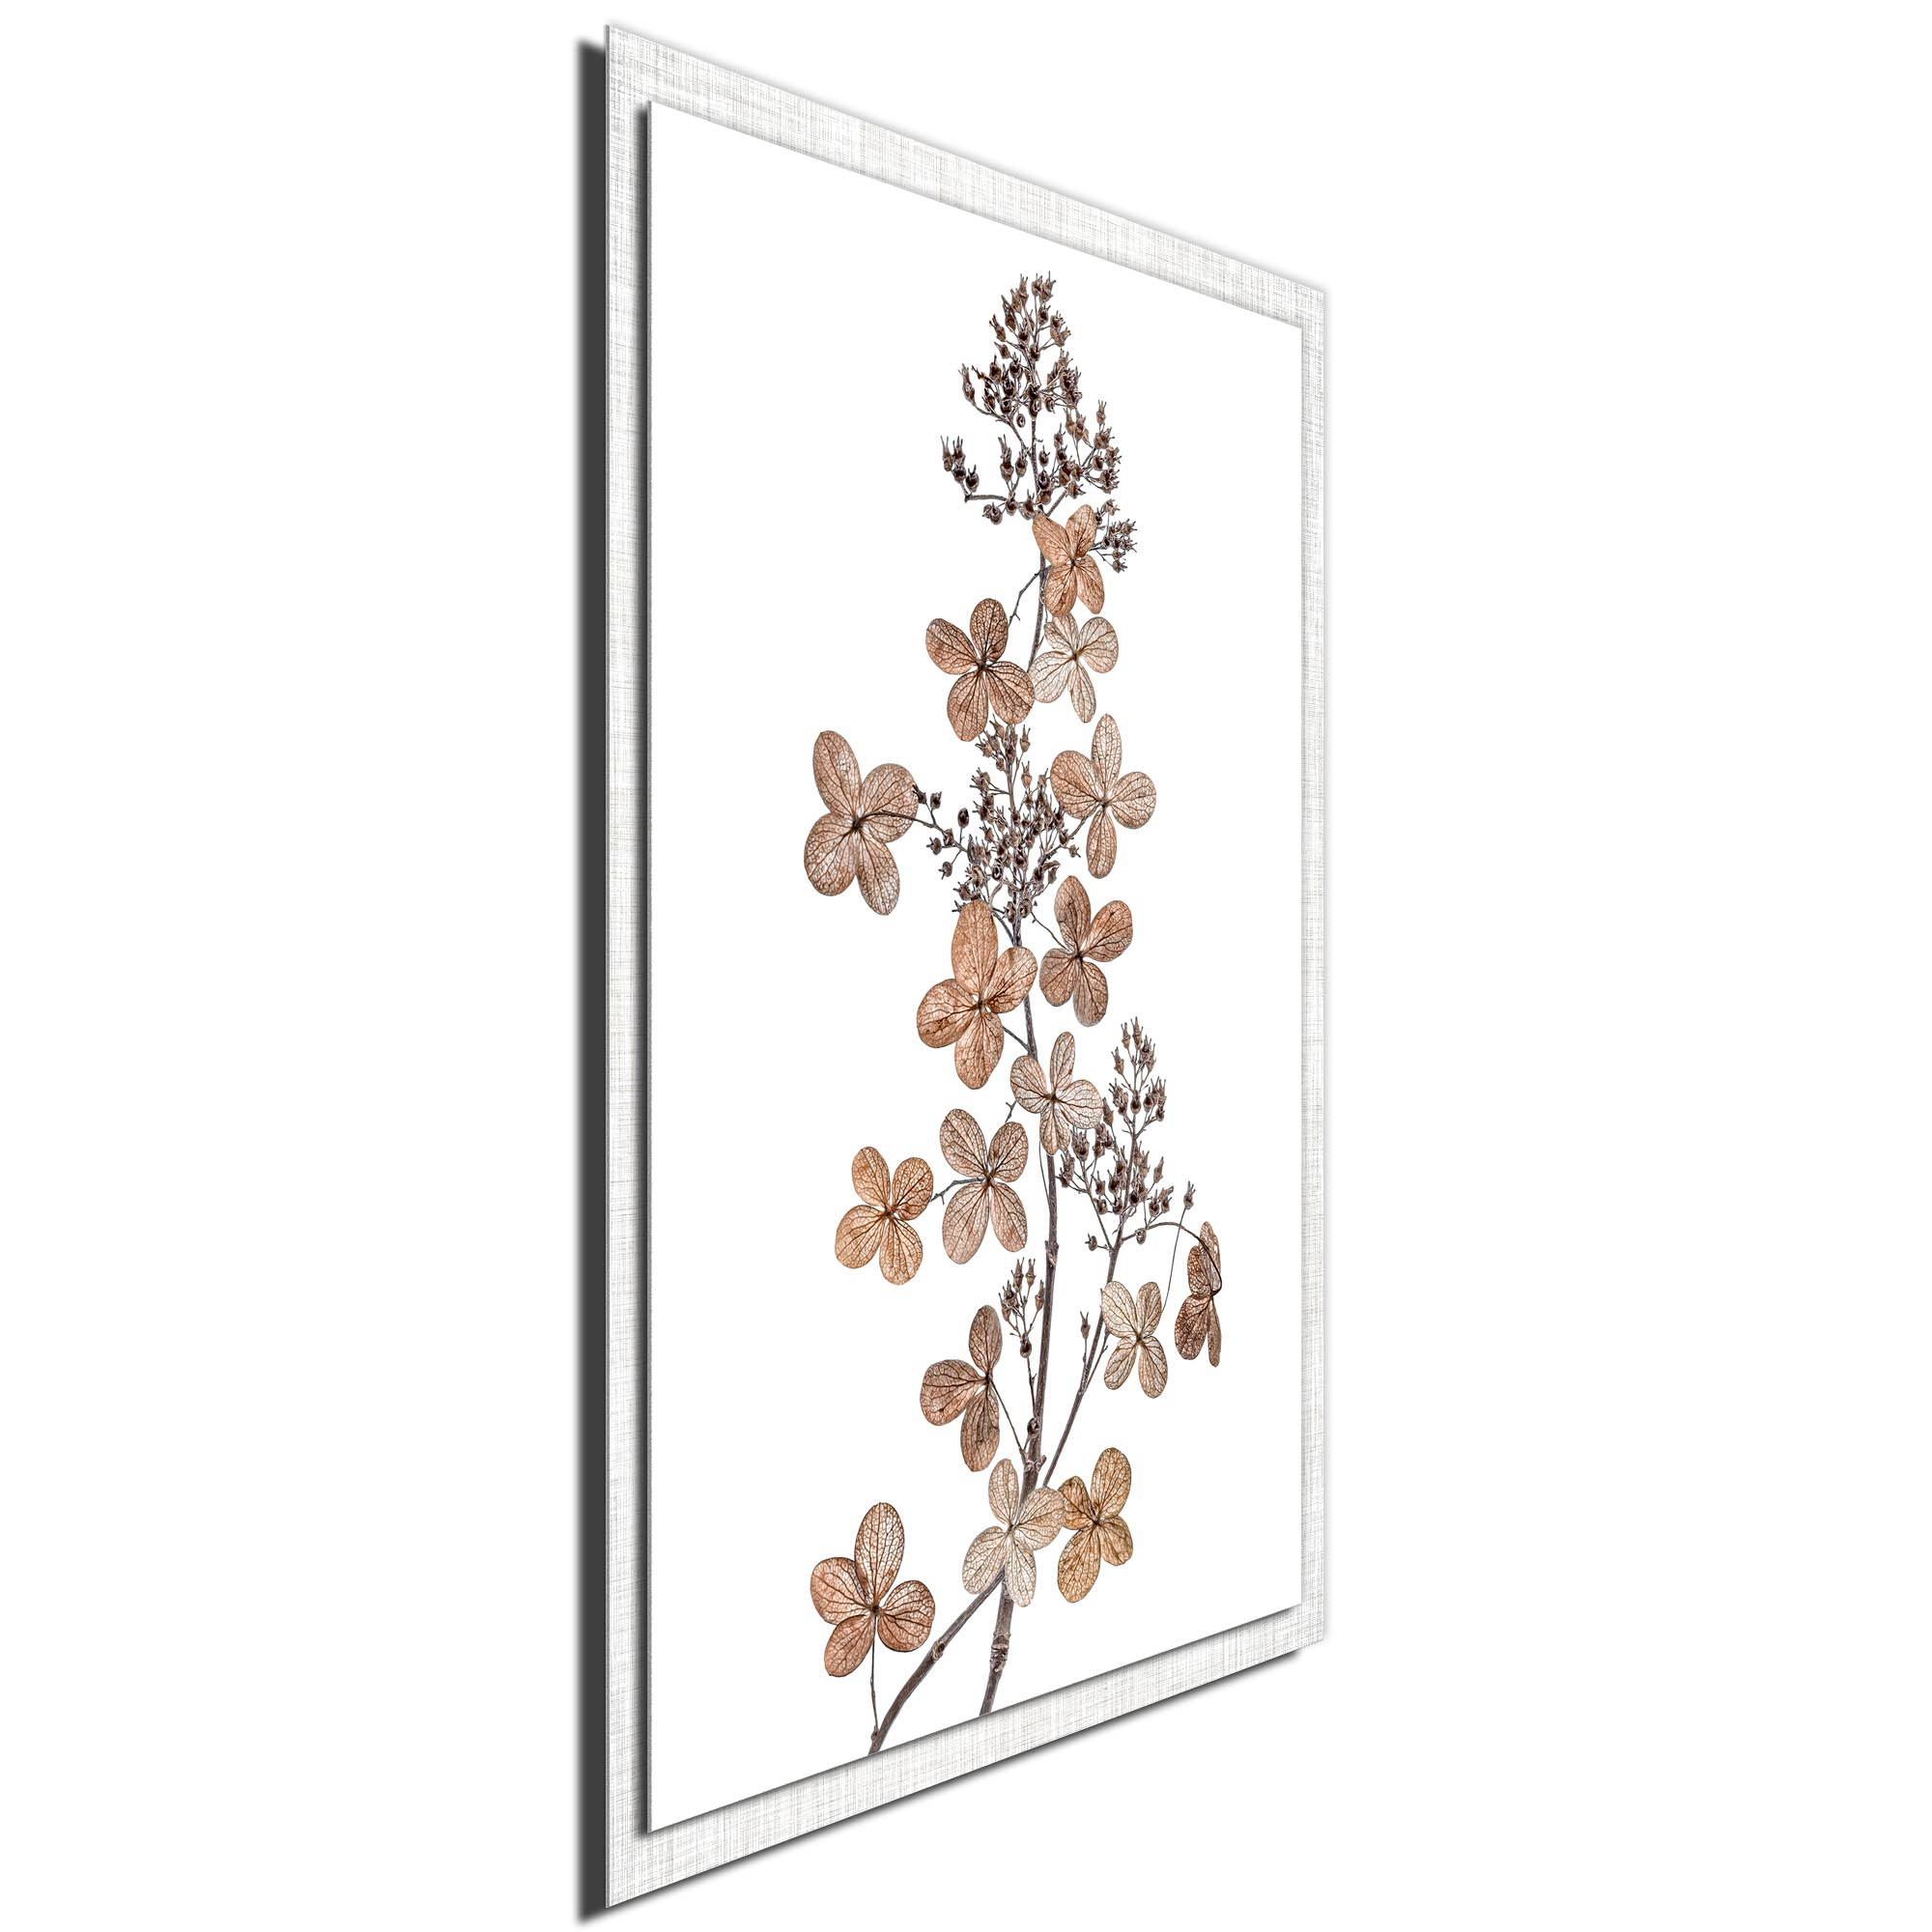 Hydrangea Paniculata by Mandy Disher - Modern Farmhouse Floral on Metal - Image 2